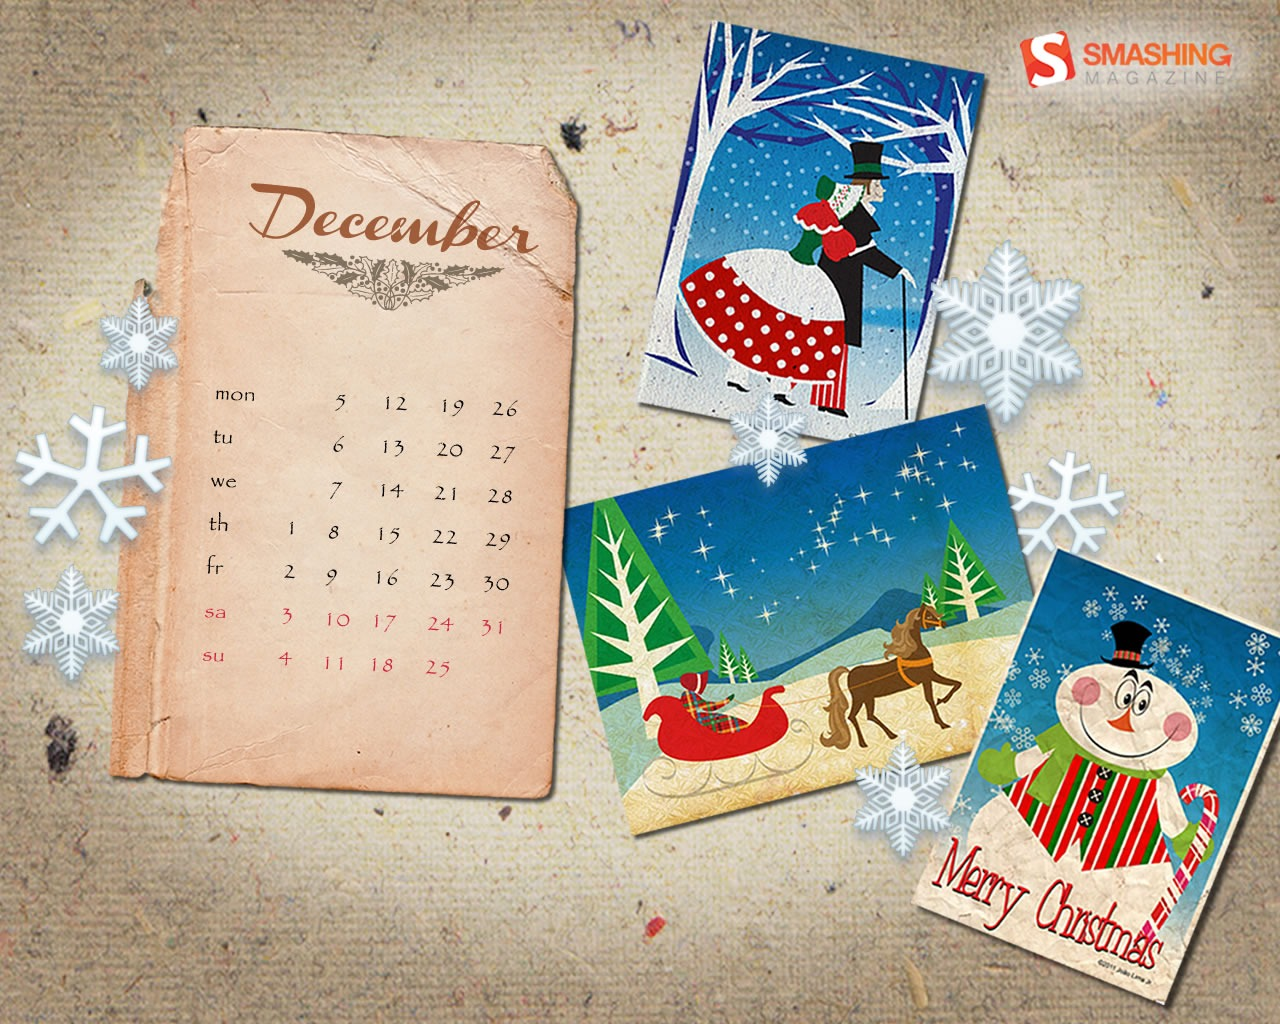 In January Calendar Wallpaper 31186